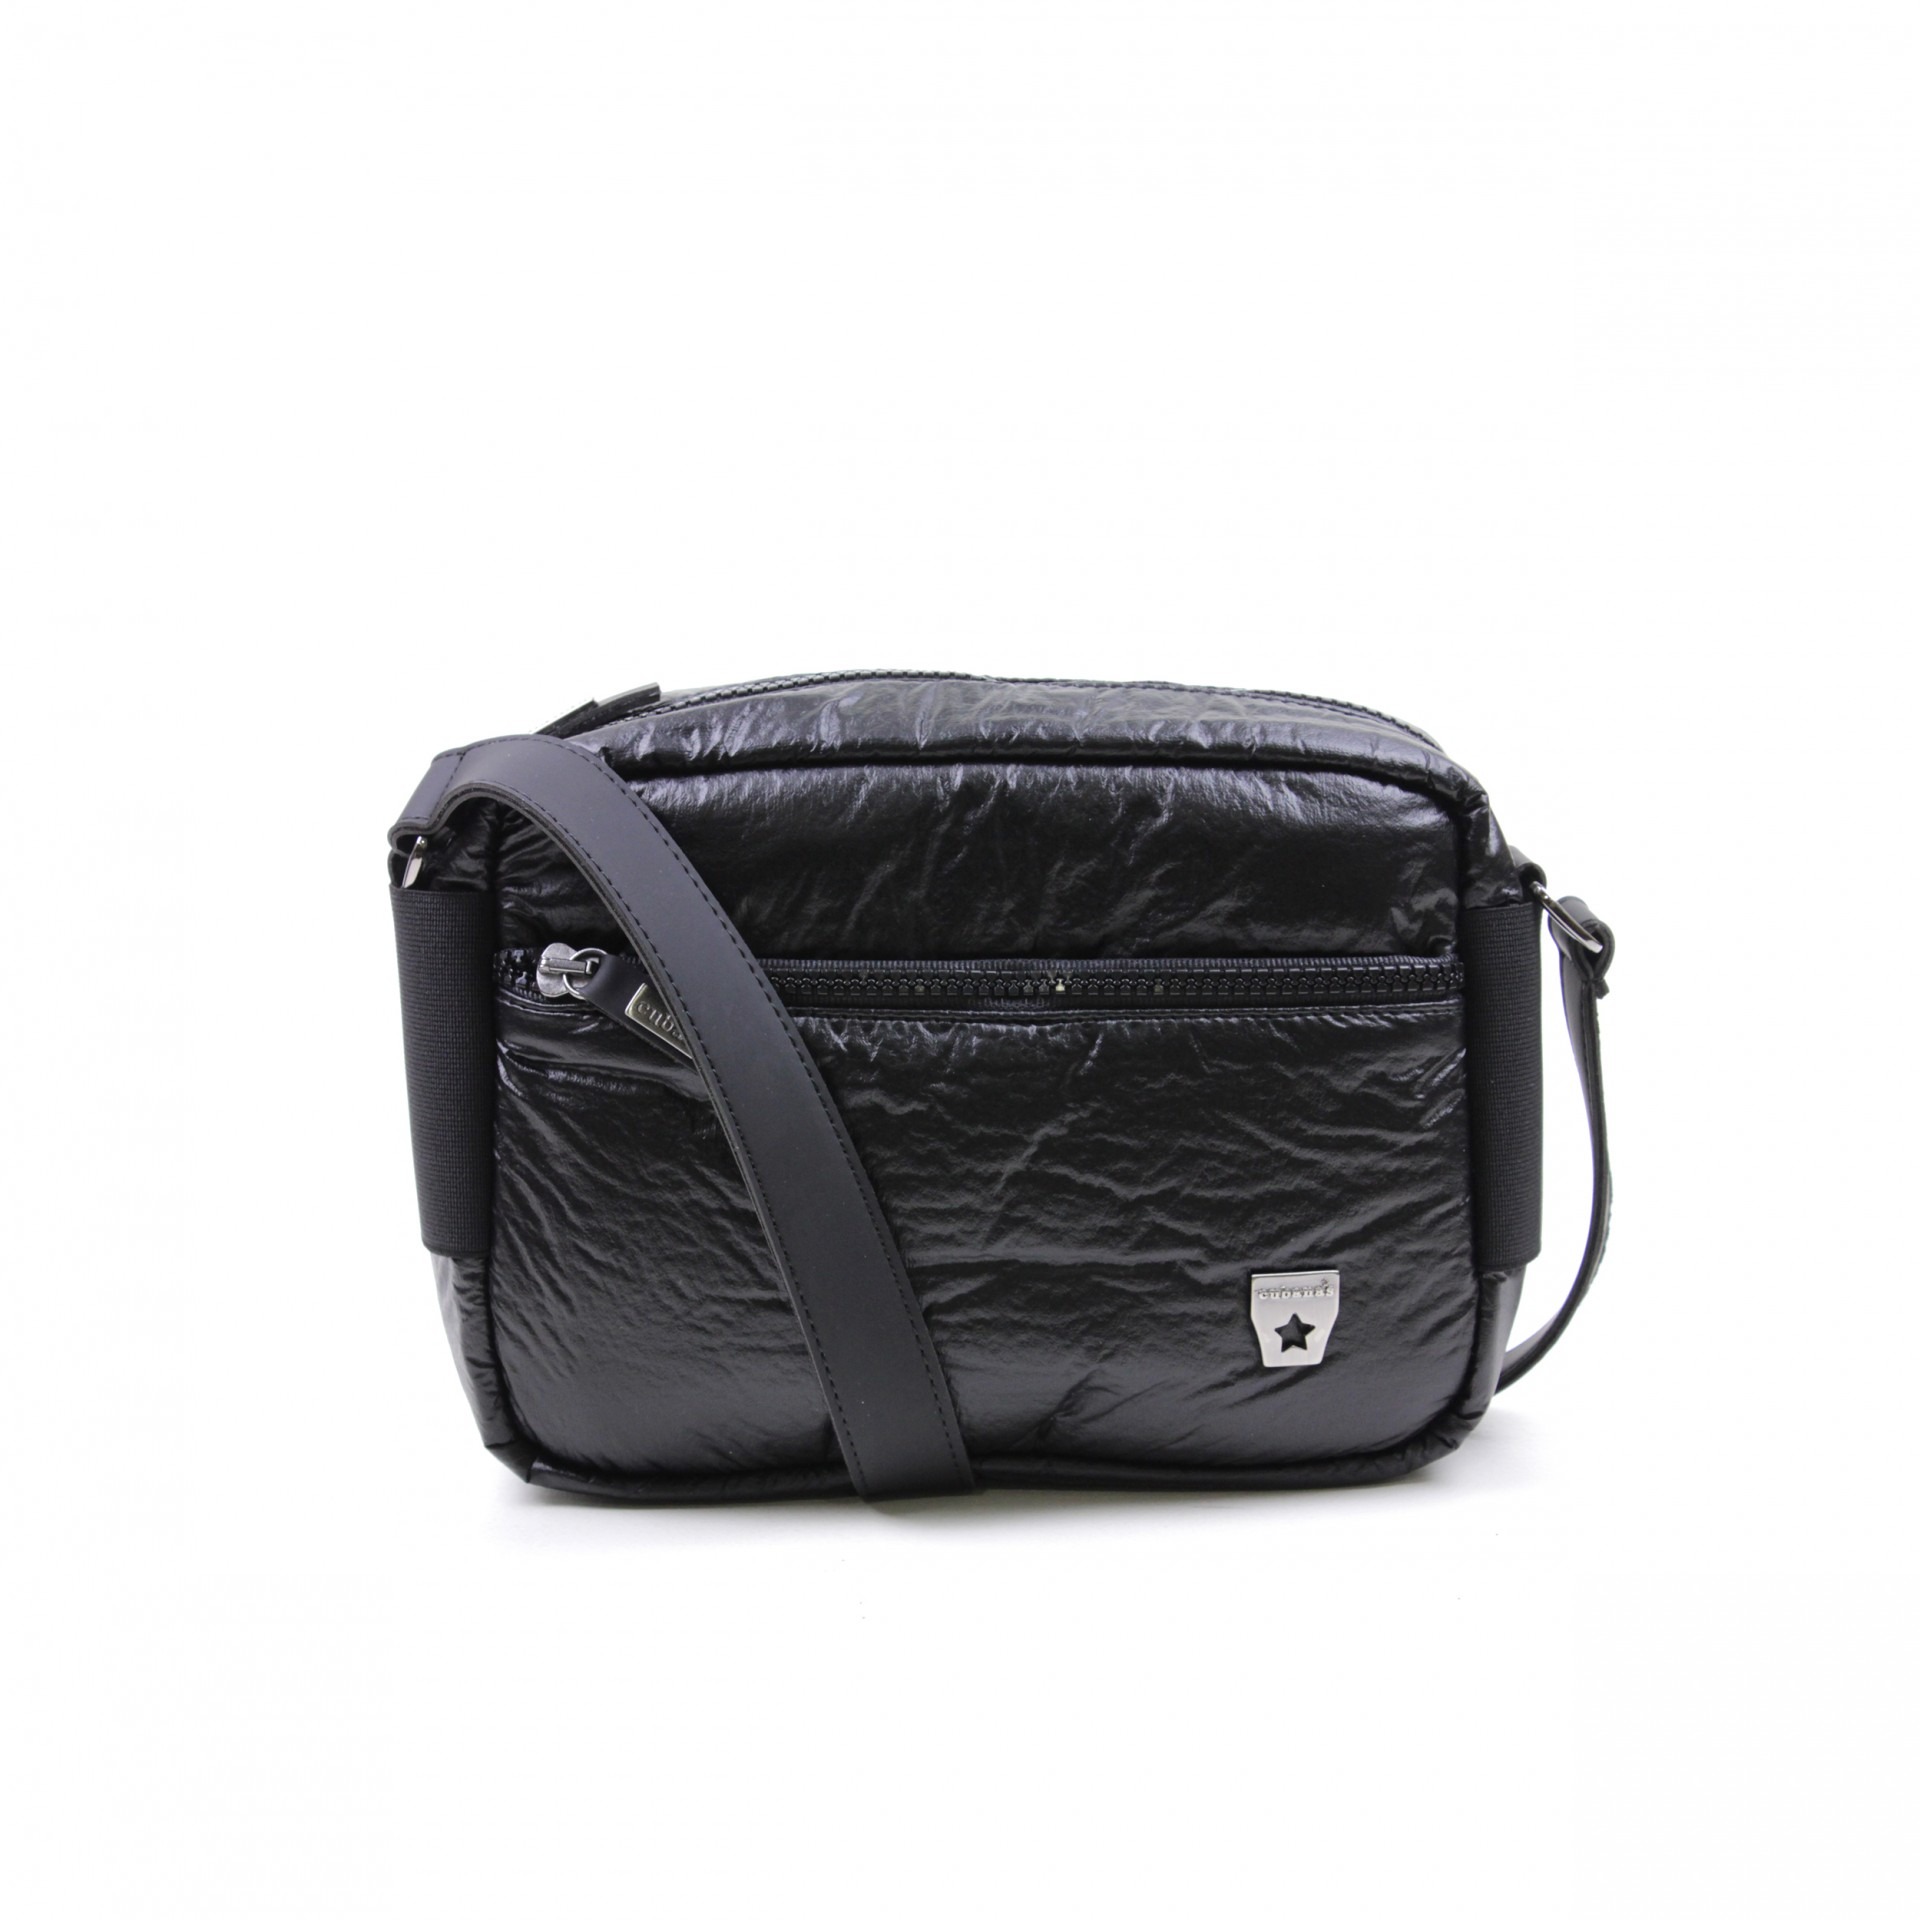 CROSSBODY CUBANAS STONE210 BLACK